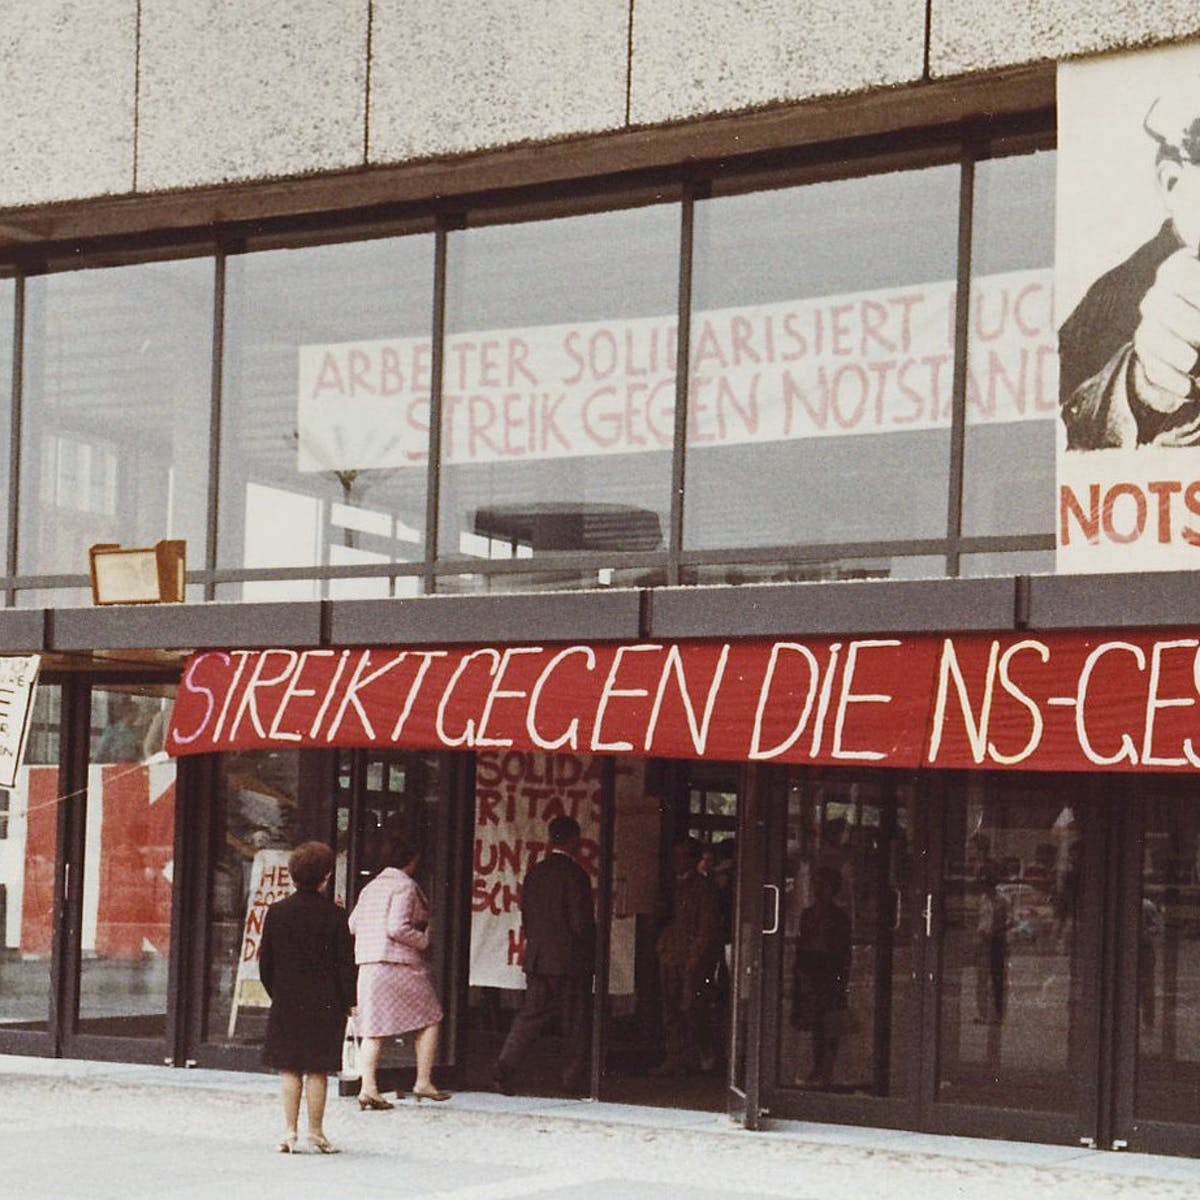 Organizing a student protest? Have a look at 1970s Germany